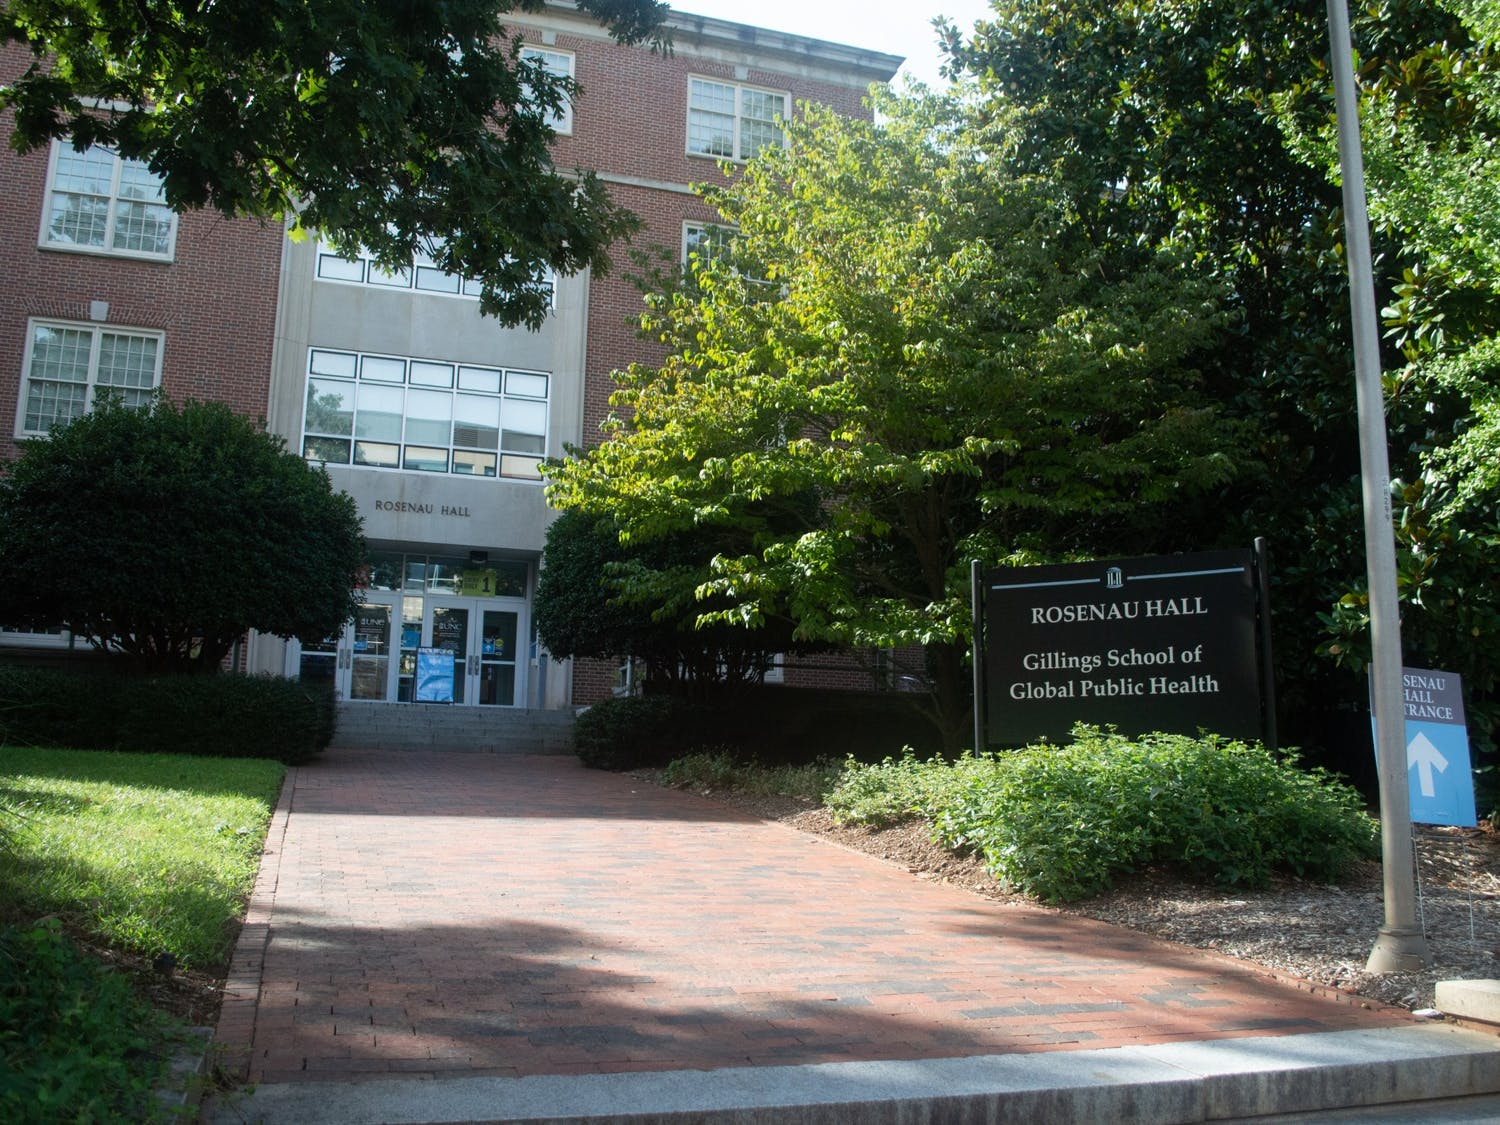 Rosenau Hall, home to the Gillings School of Global Public Health where many UNC students and faculty conduct on-campus research, as pictured on Thursday, Sept. 10, 2020.